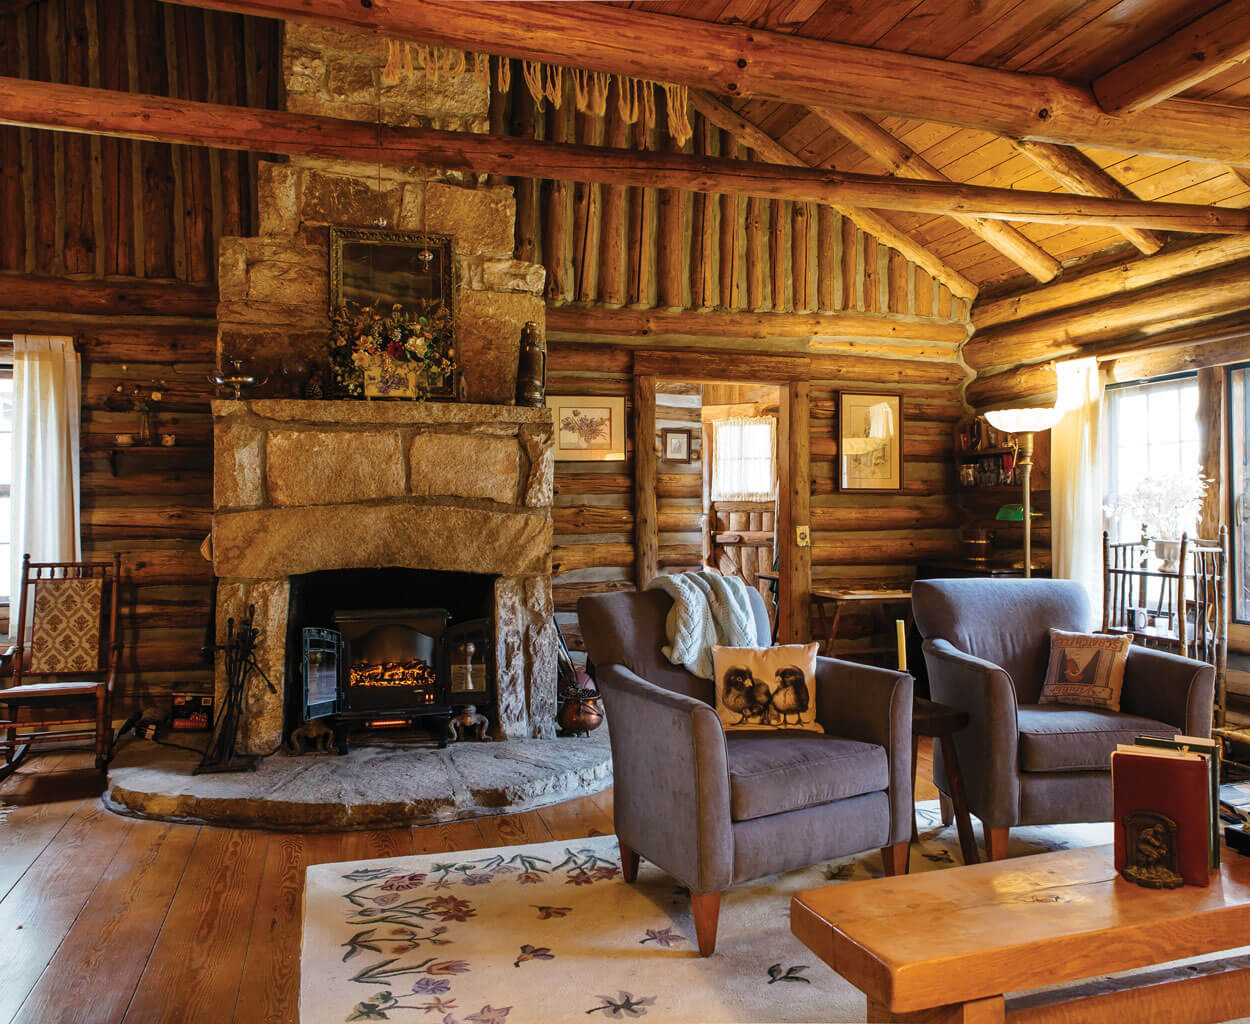 In Search Of Joe Webb Highlands Most Coveted Cabins Our